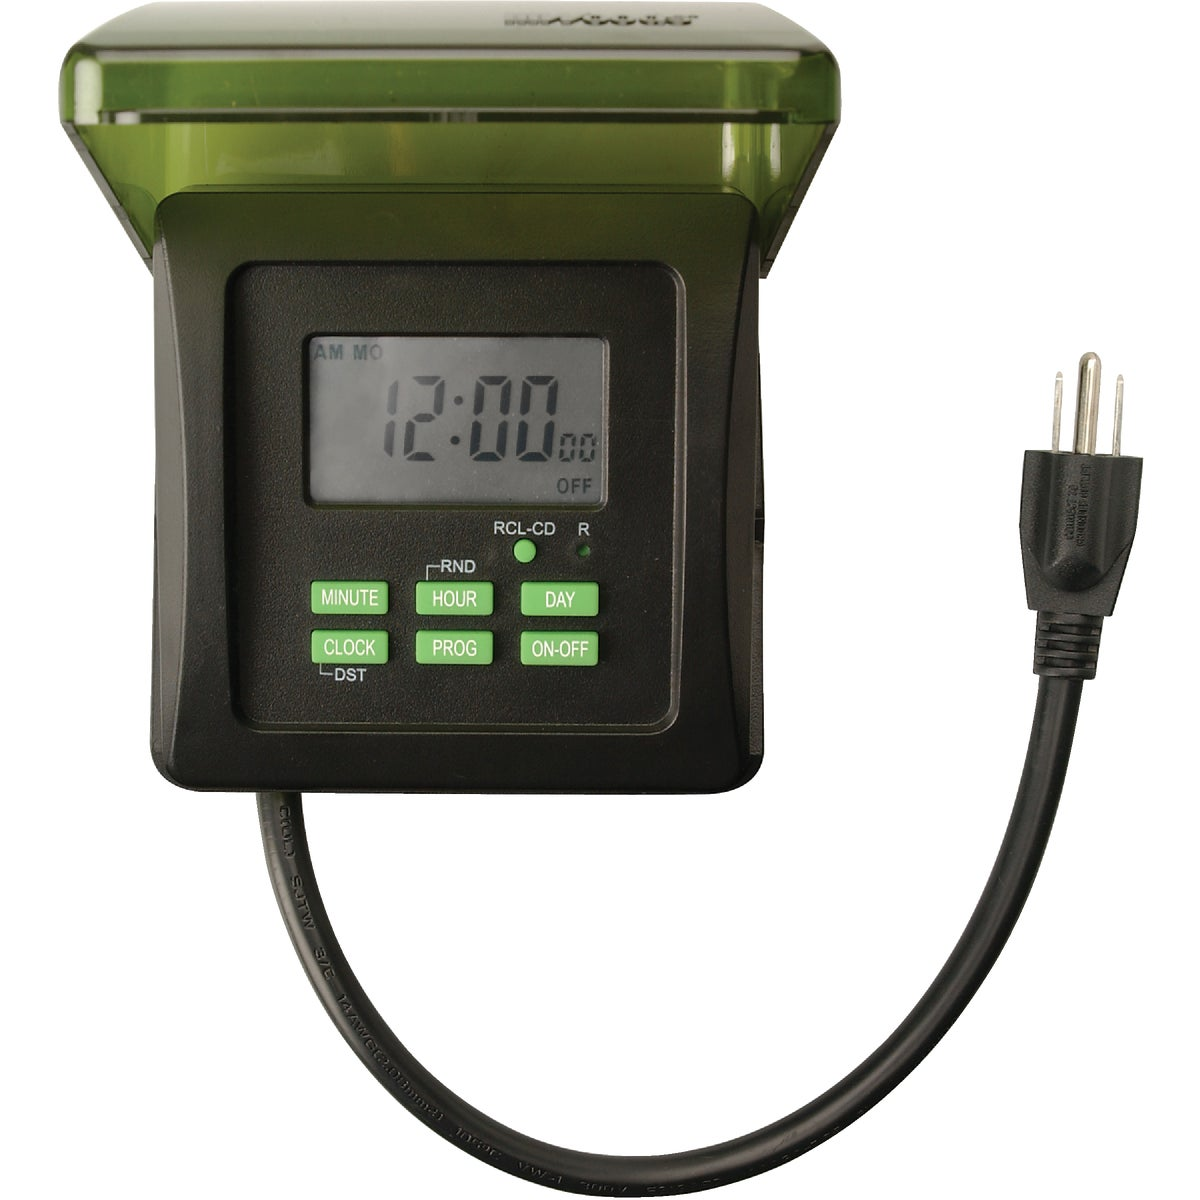 7-DAY OUTDOOR TIMER - 50015 by Woods Wire Coleman